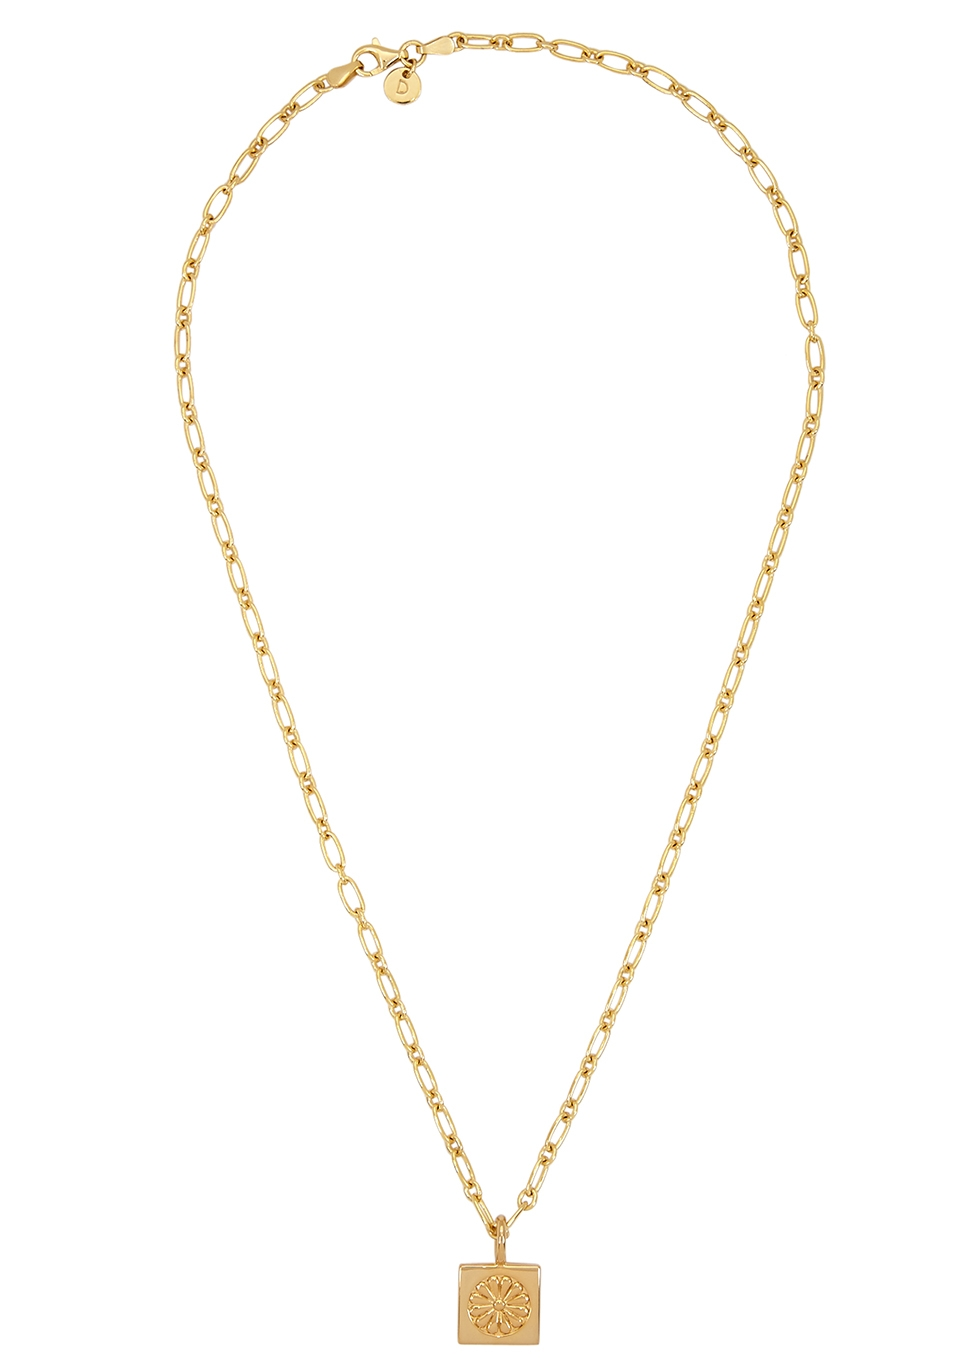 Daisy Square 18kt gold-plated chain necklace